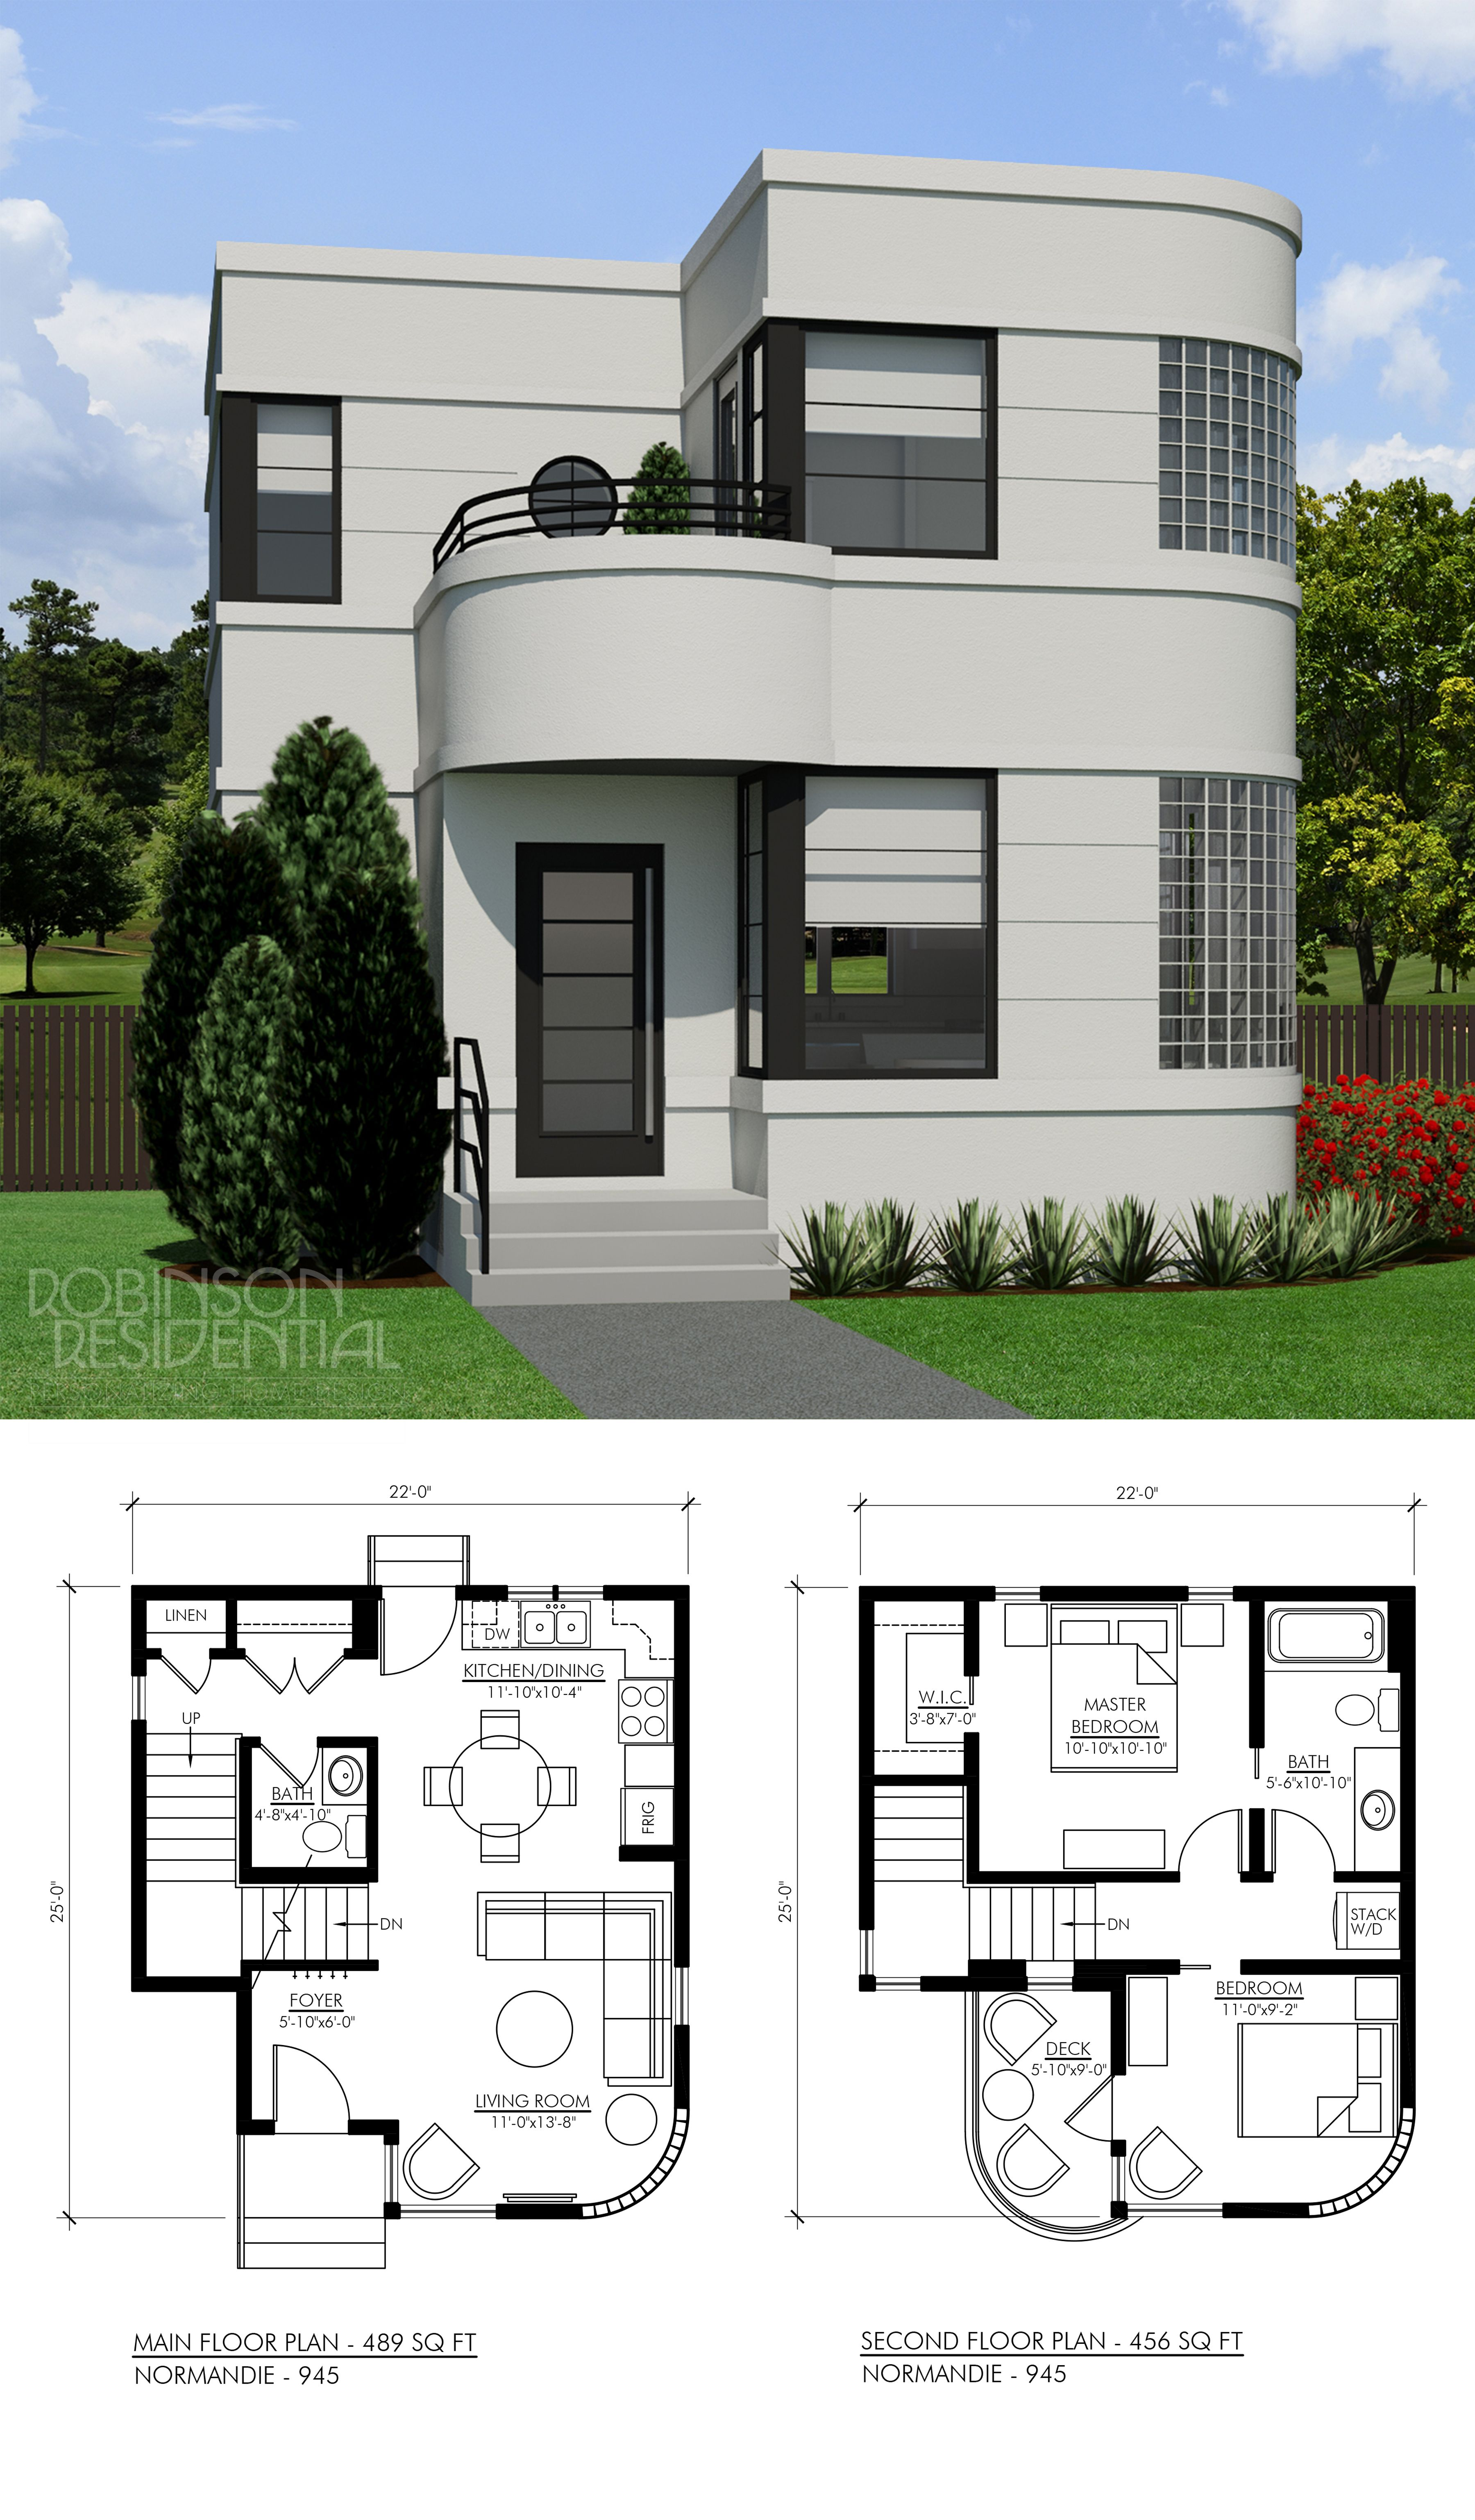 Contemporary Normandie 945 Robinson Plans House Front Design Modern House Plans Small House Design